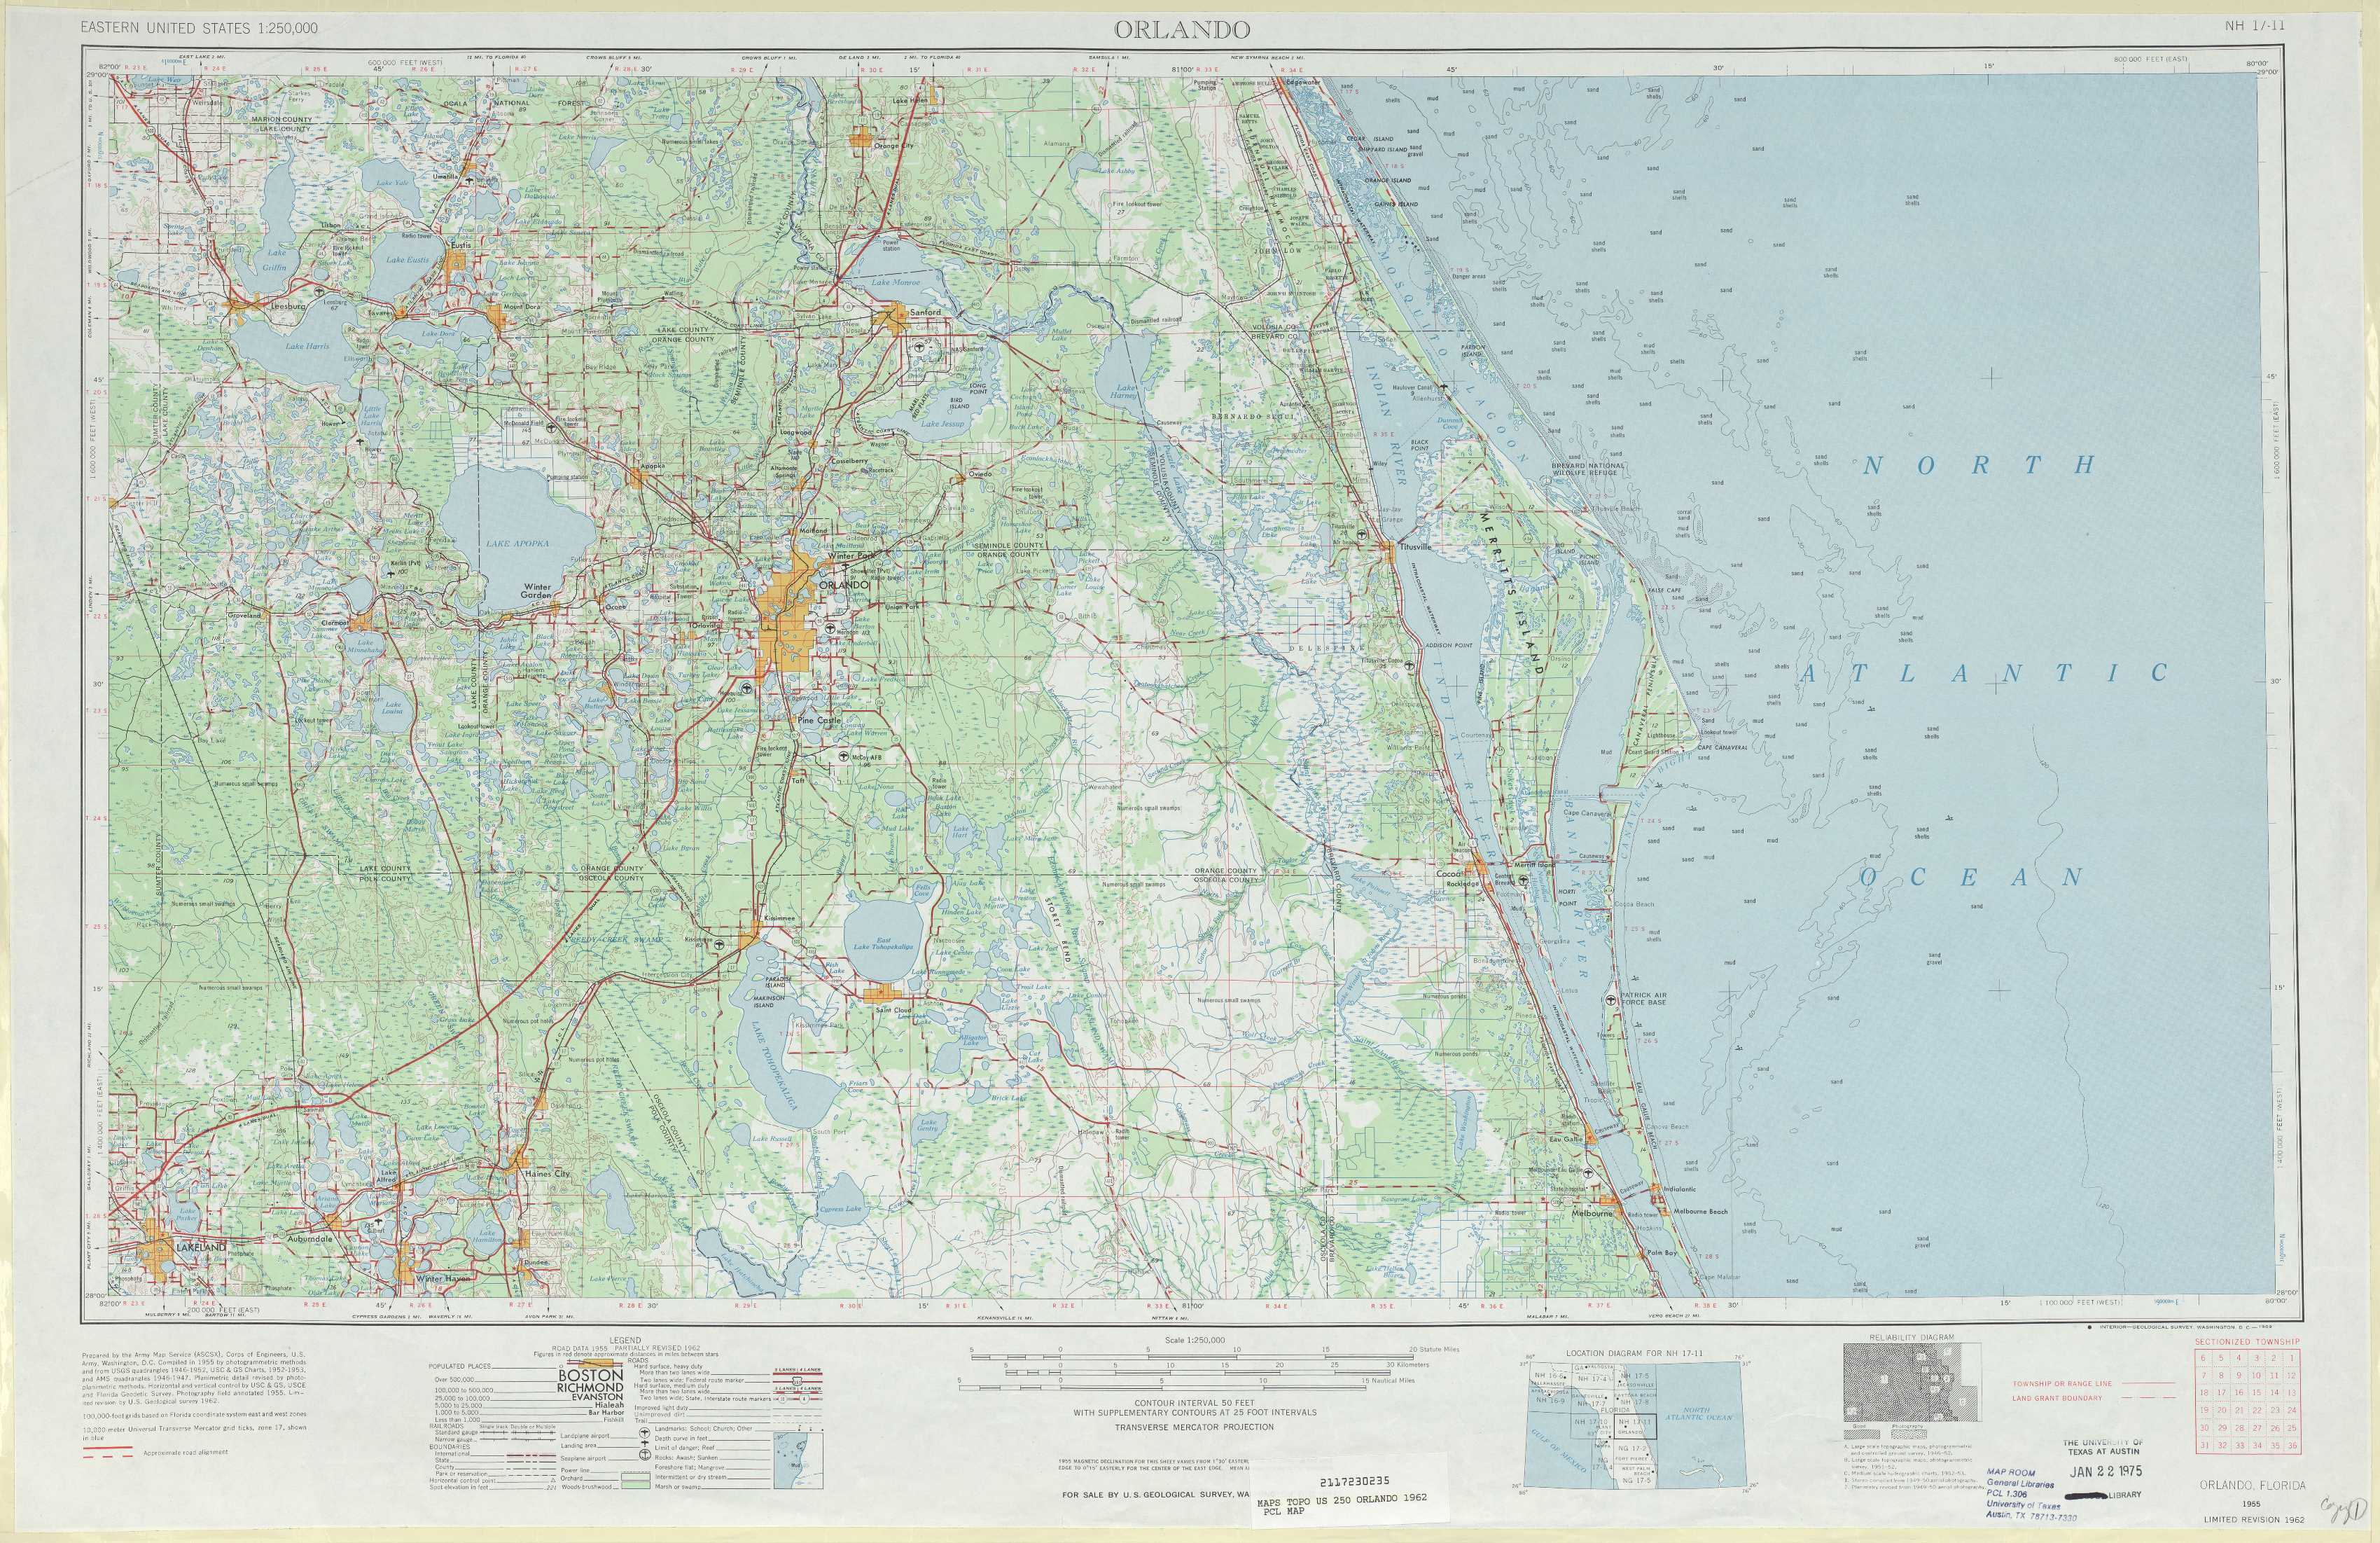 Orlando Topographic Maps FL USGS Topo Quad A At Scale - Florida topographic map free